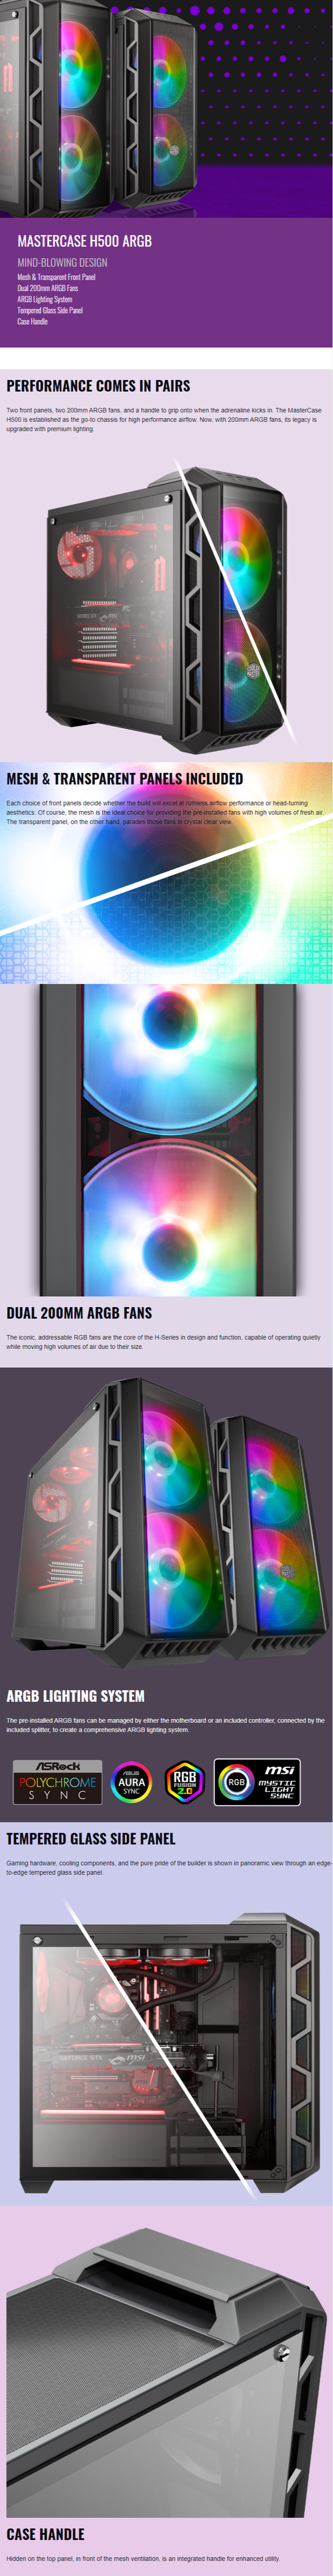 Cooler Master MCM-H500-IGNN-S01 MasterCase H500 A.RGB Tempered Glass MESH & TRANSPARENT